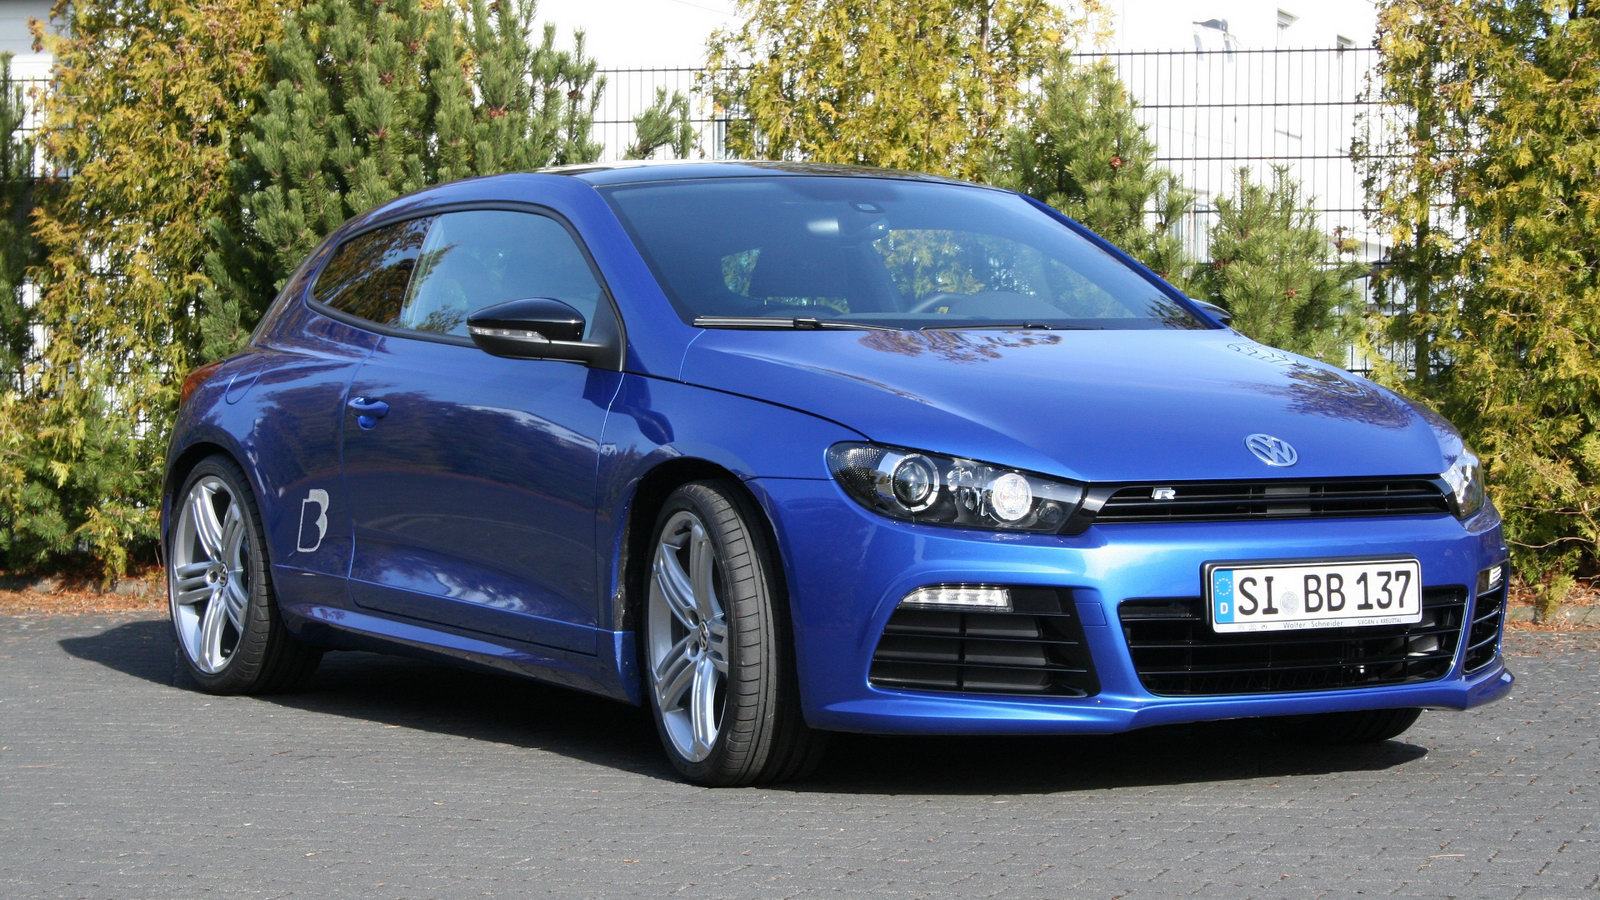 2018 volkswagen scirocco r car photos catalog 2018. Black Bedroom Furniture Sets. Home Design Ideas